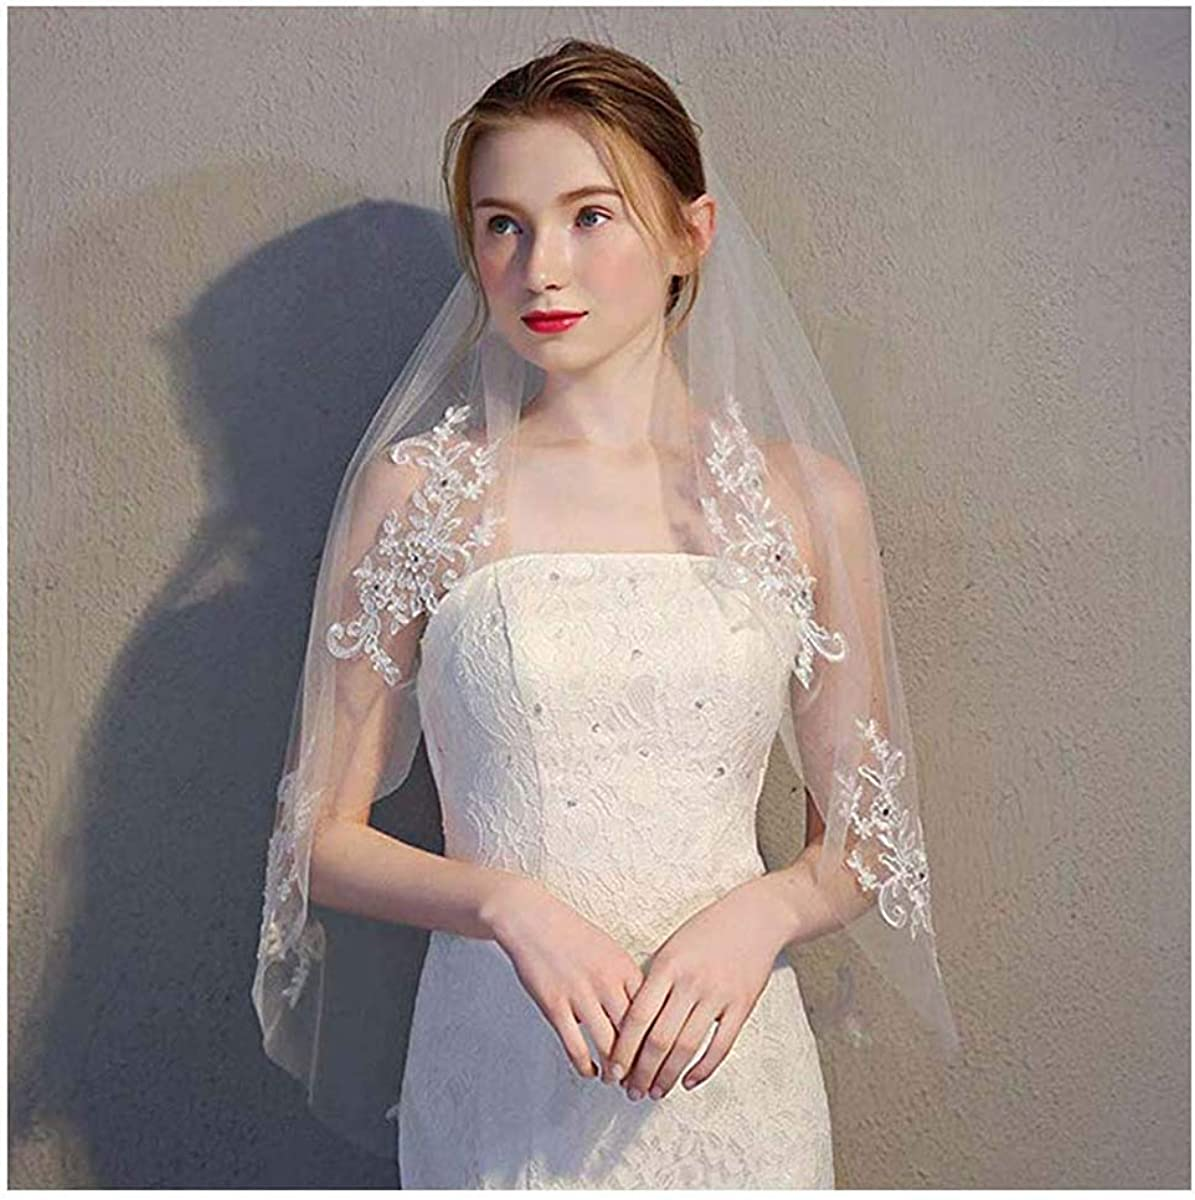 CanB Women's Lace Wedding Chapel Veil With Comb 1 Tier Bridal Elbow length Veils and Headpieces for Brides 35.4inches